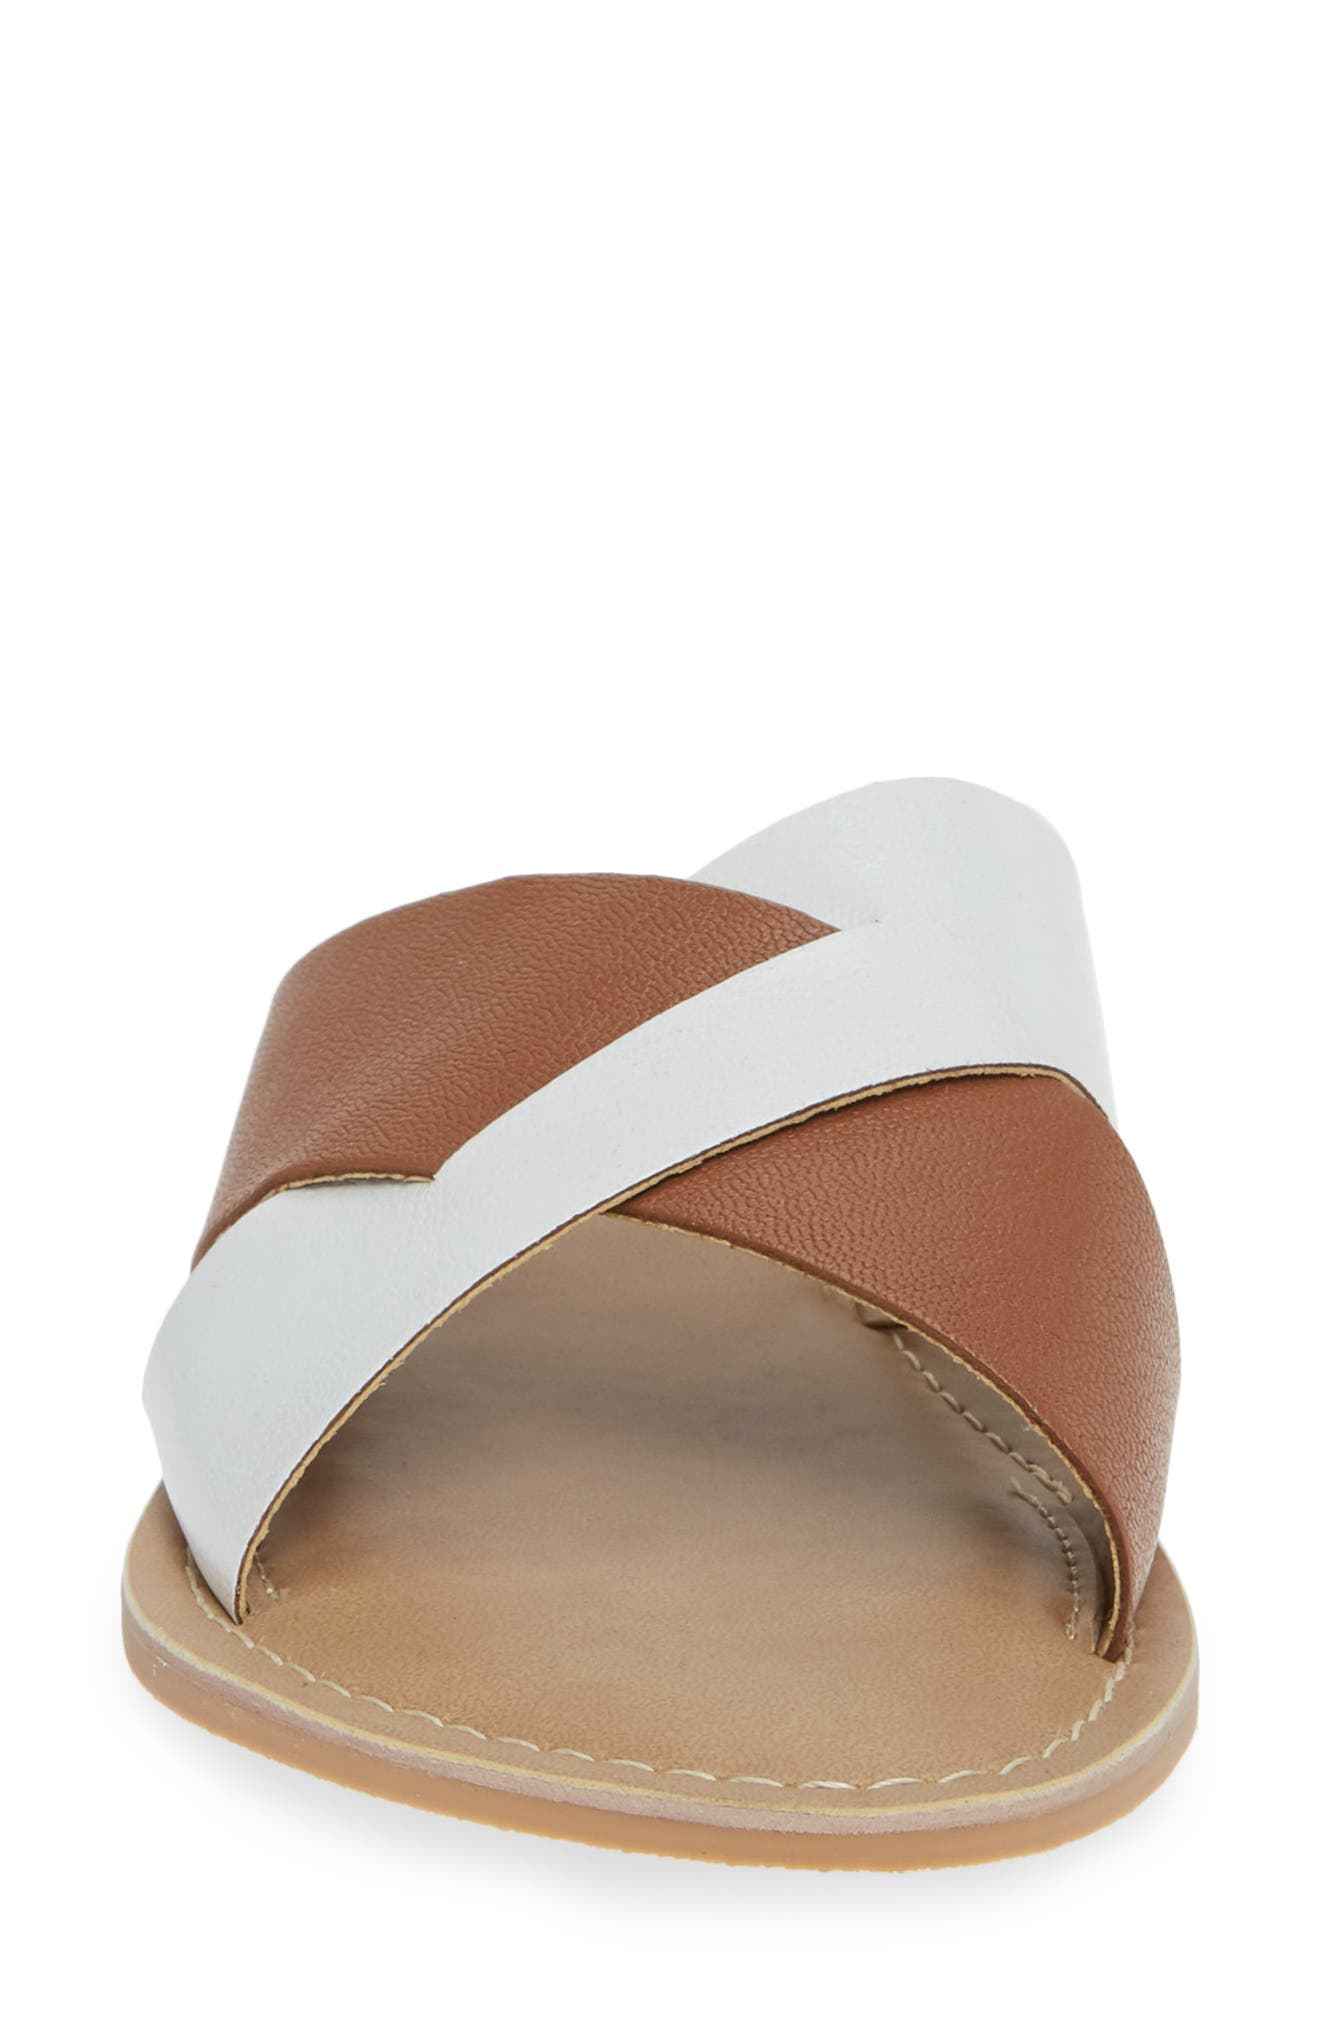 COCONUTS BY MATISSE, Wilma Slide Sandal, Alternate thumbnail 4, color, TAN/ WHITE LEATHER